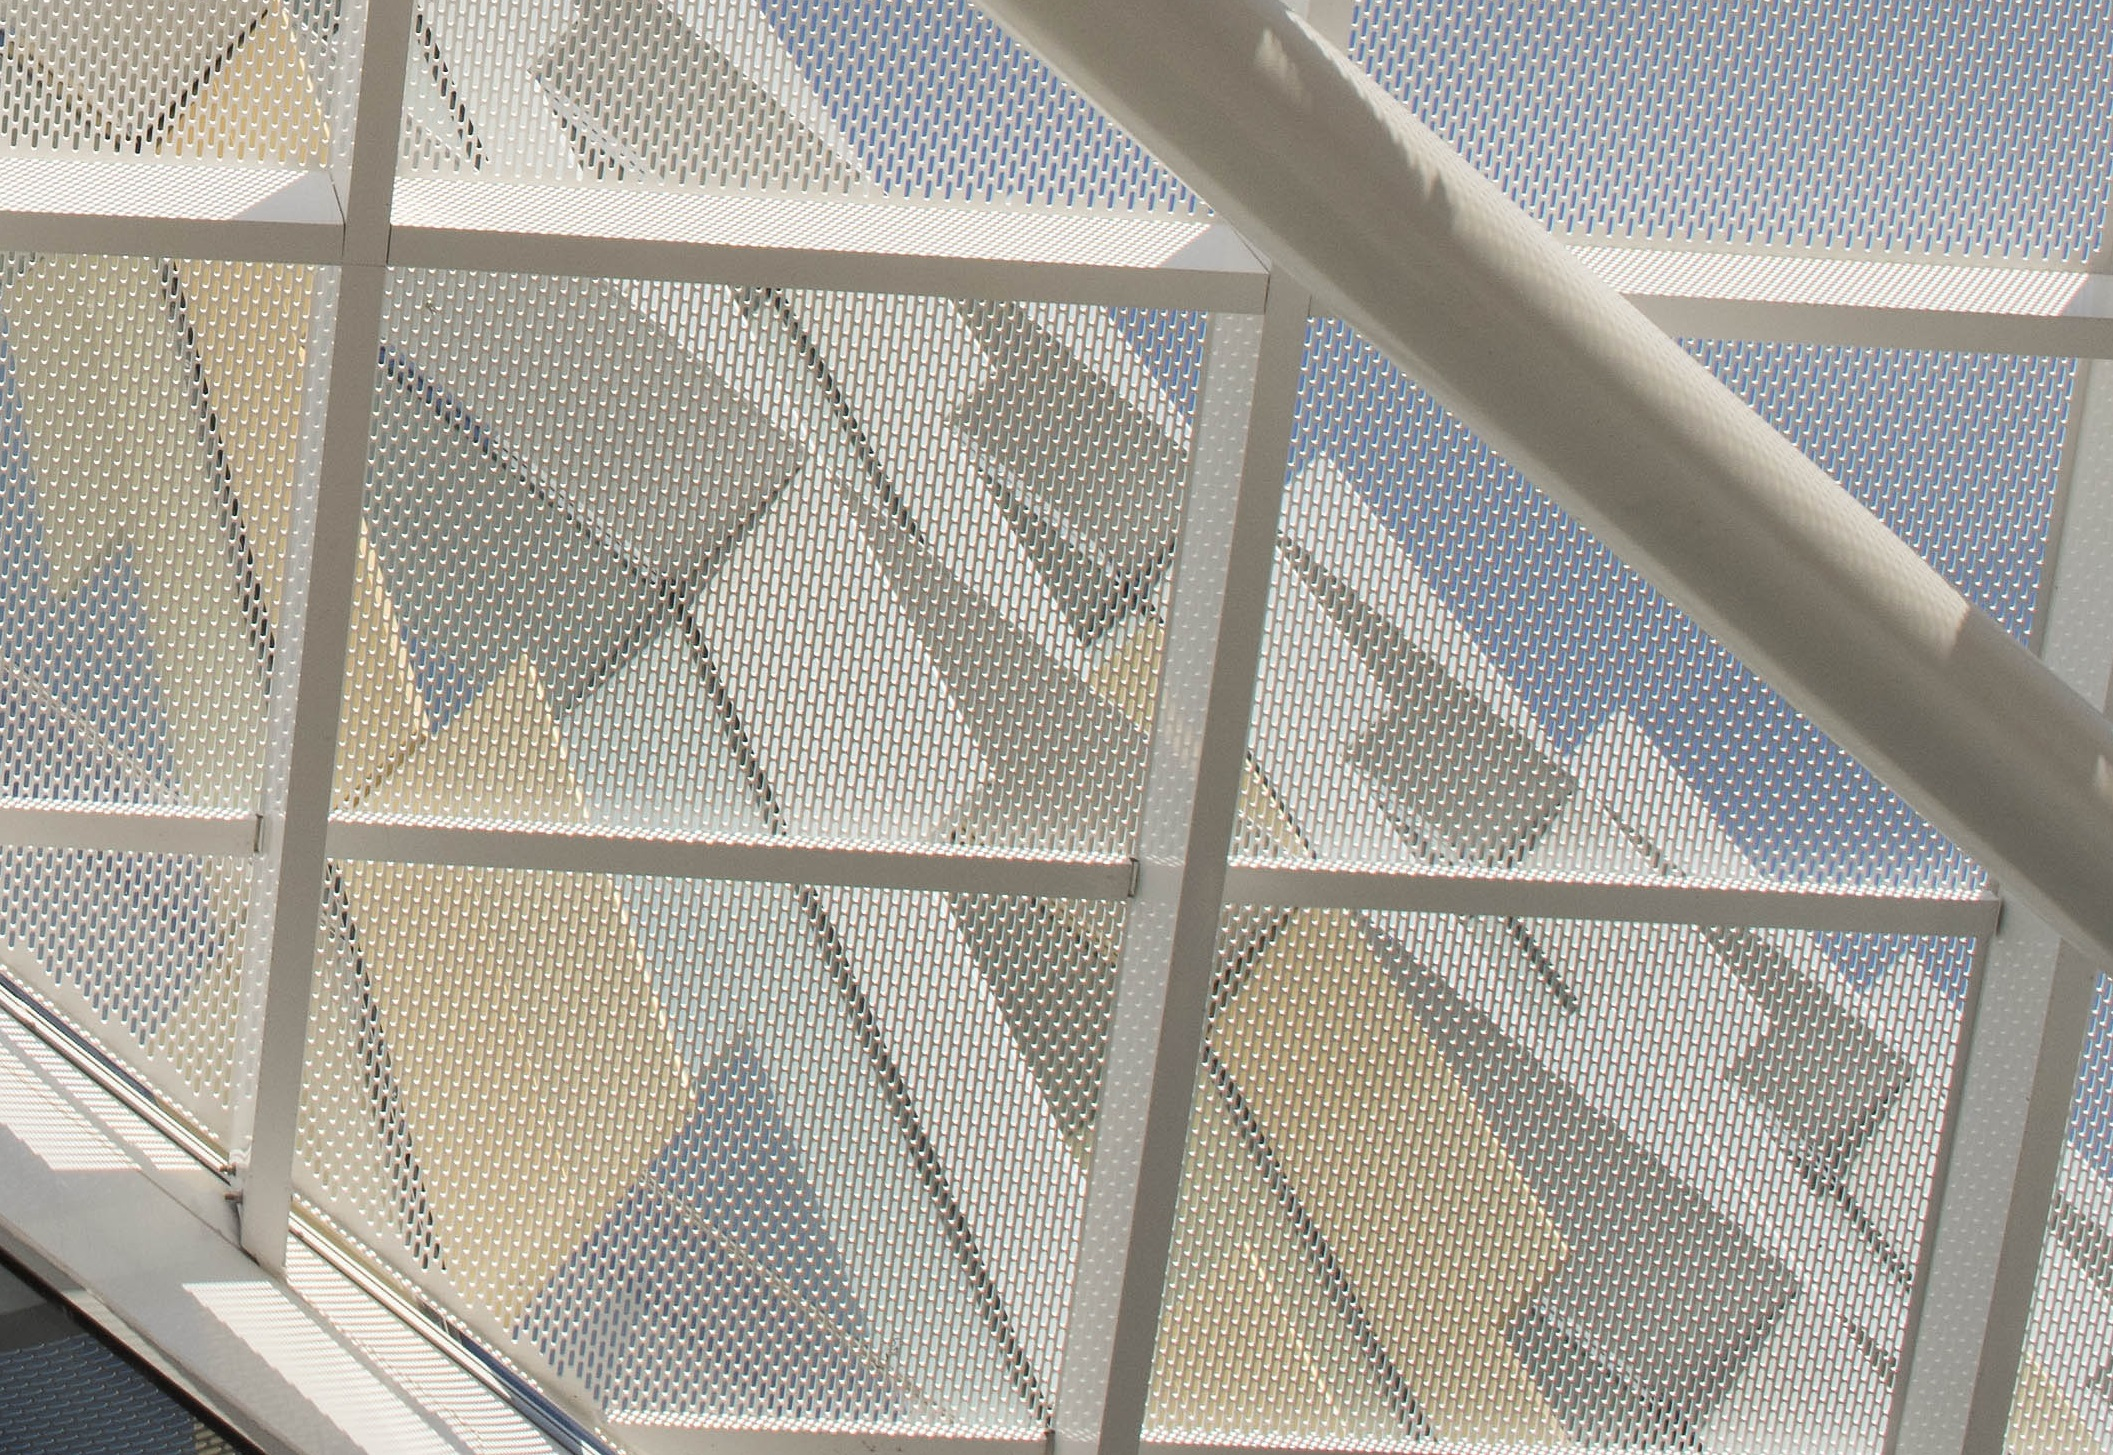 Perforated metal patterns - University of Newcastle project by Arrow Metal